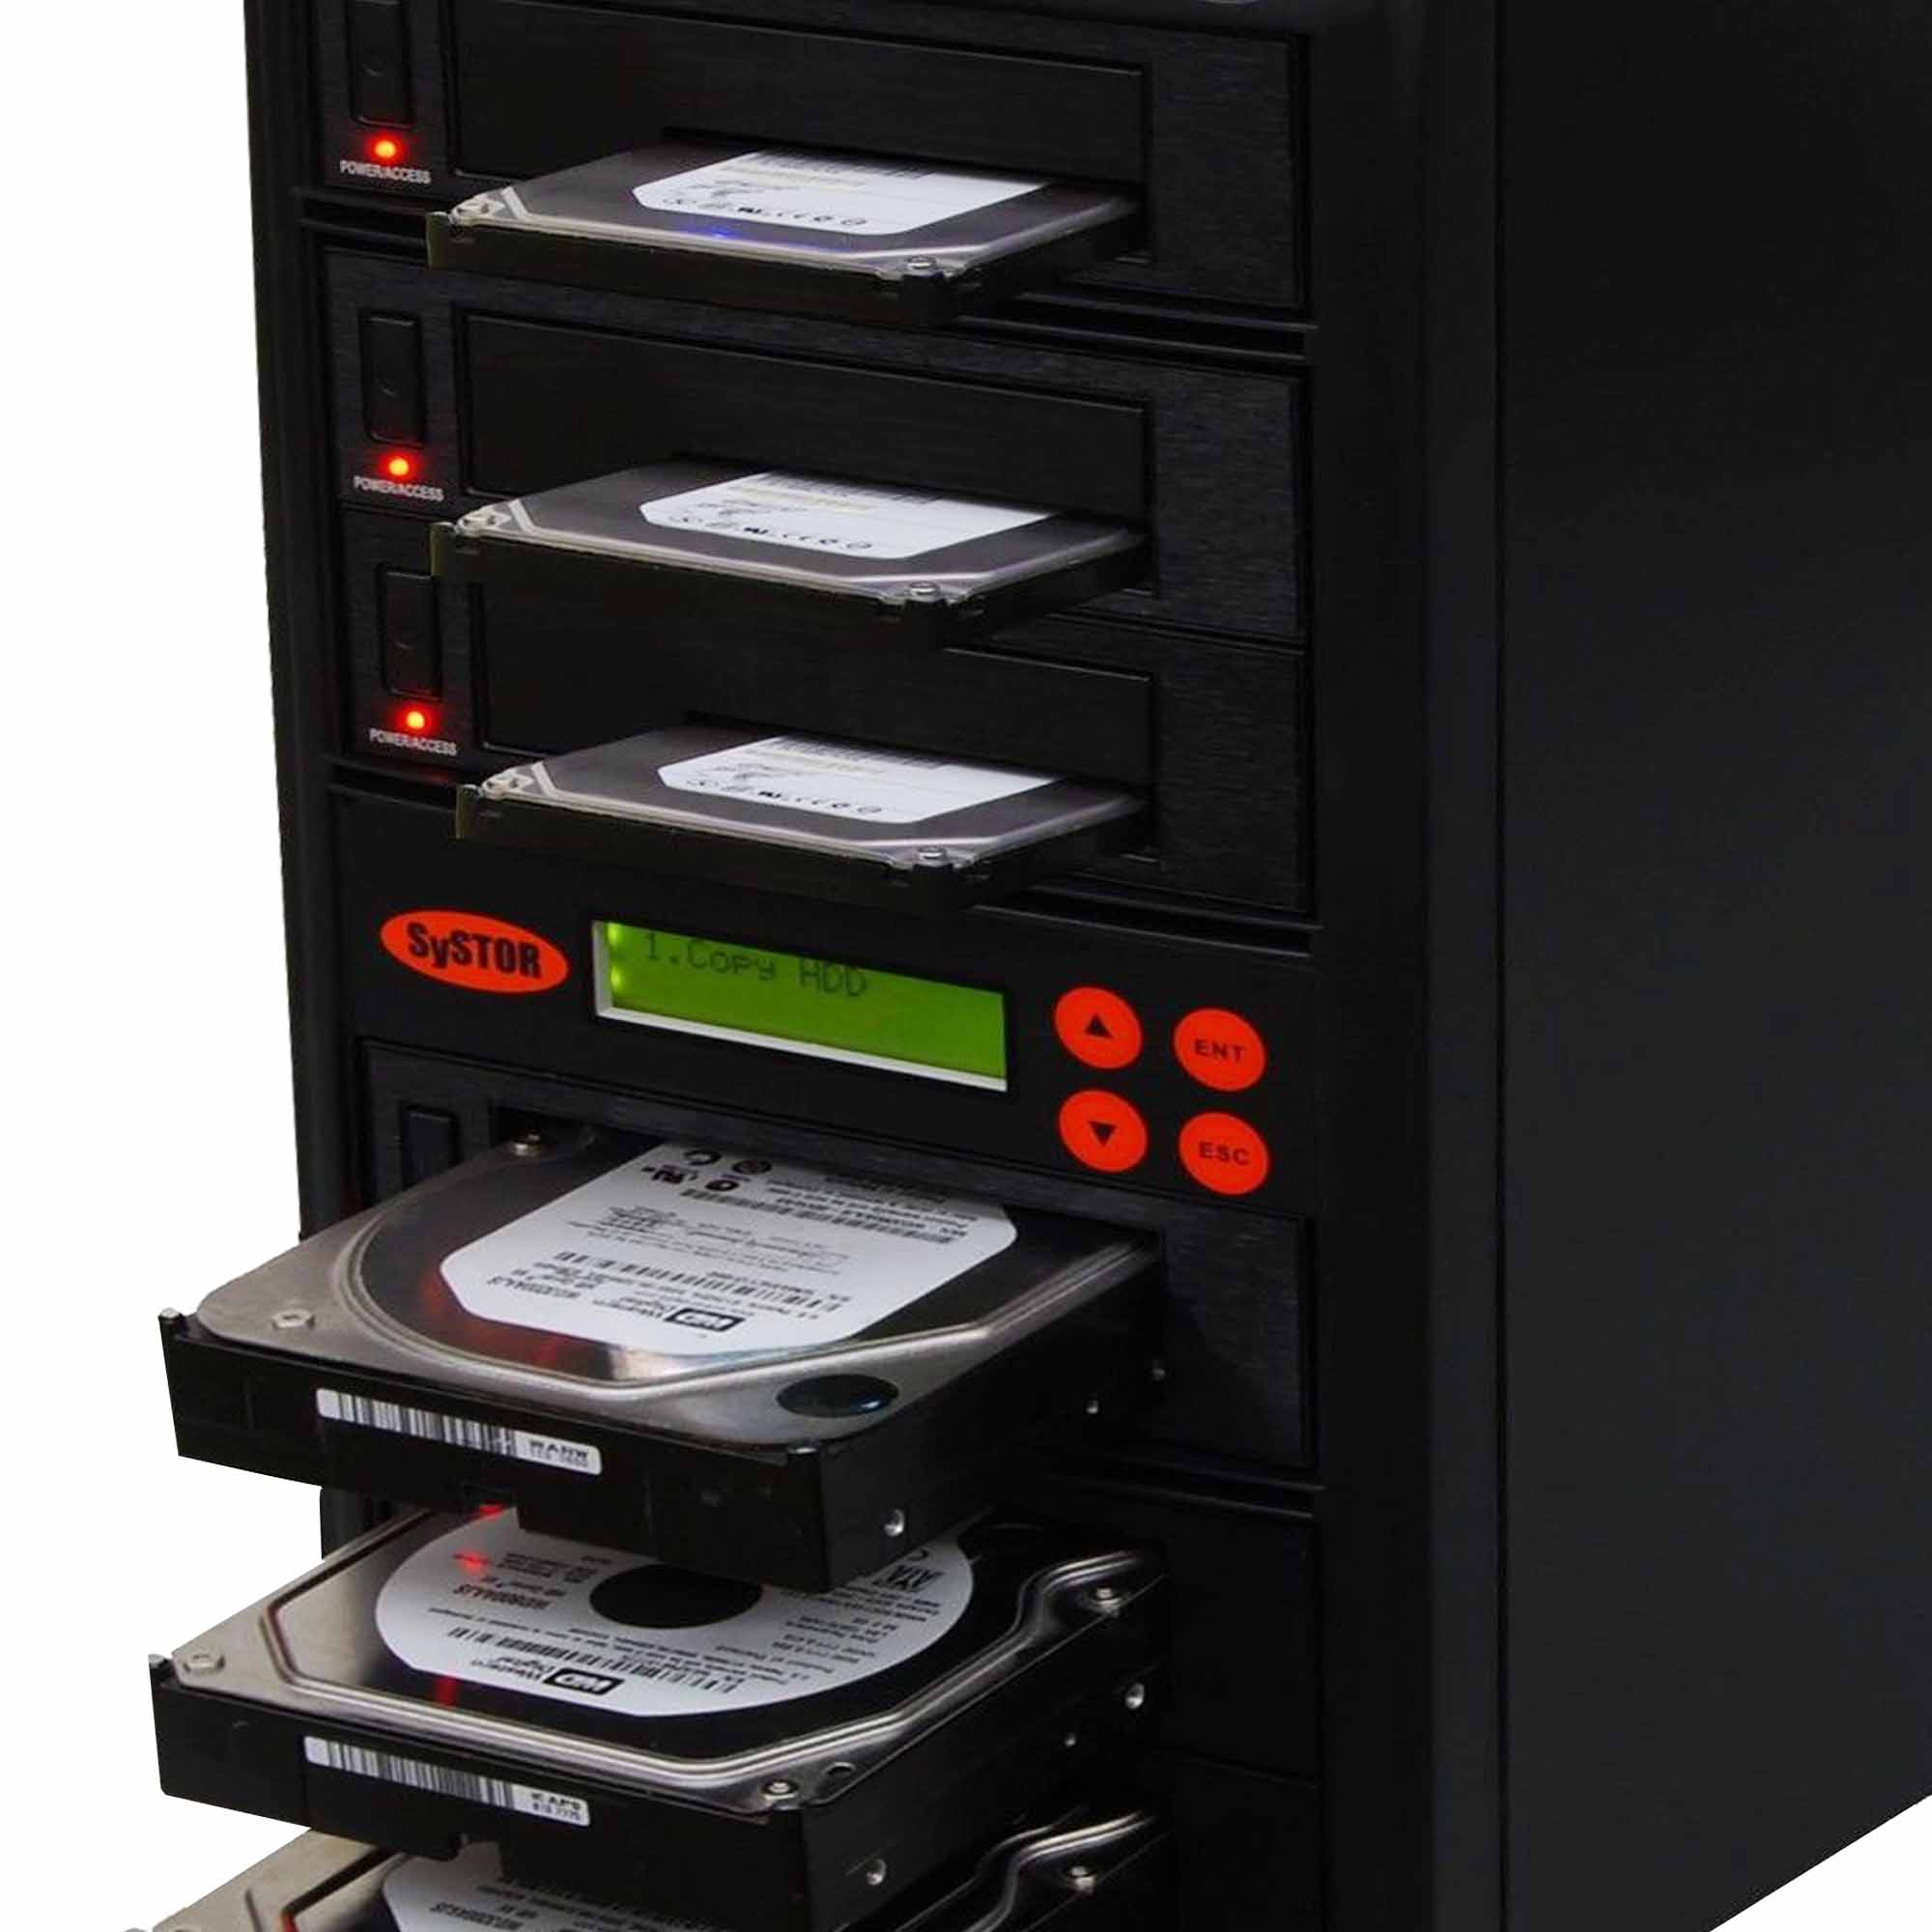 Hard Drive Duplicator Towers